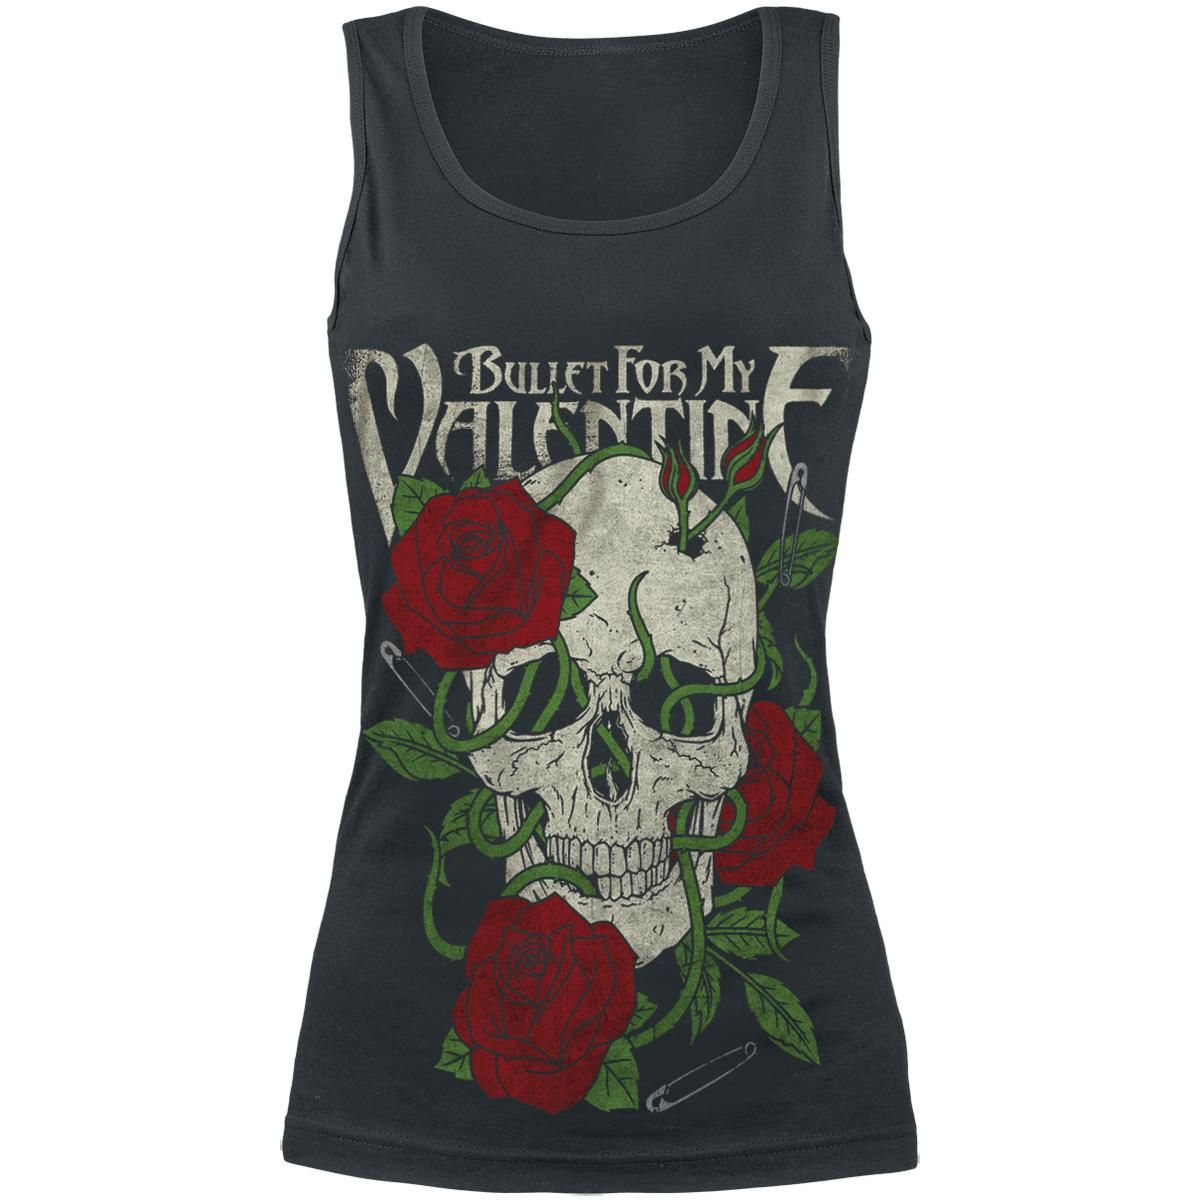 Rose Roots - Girls Top by Bullet For My Valentine - Article Number: 256764 - from 14.99 £ - EMP Mail Order UK Ltd. ::: The Heavy Metal Mailorder ::: Merchandise, Shirts and more!